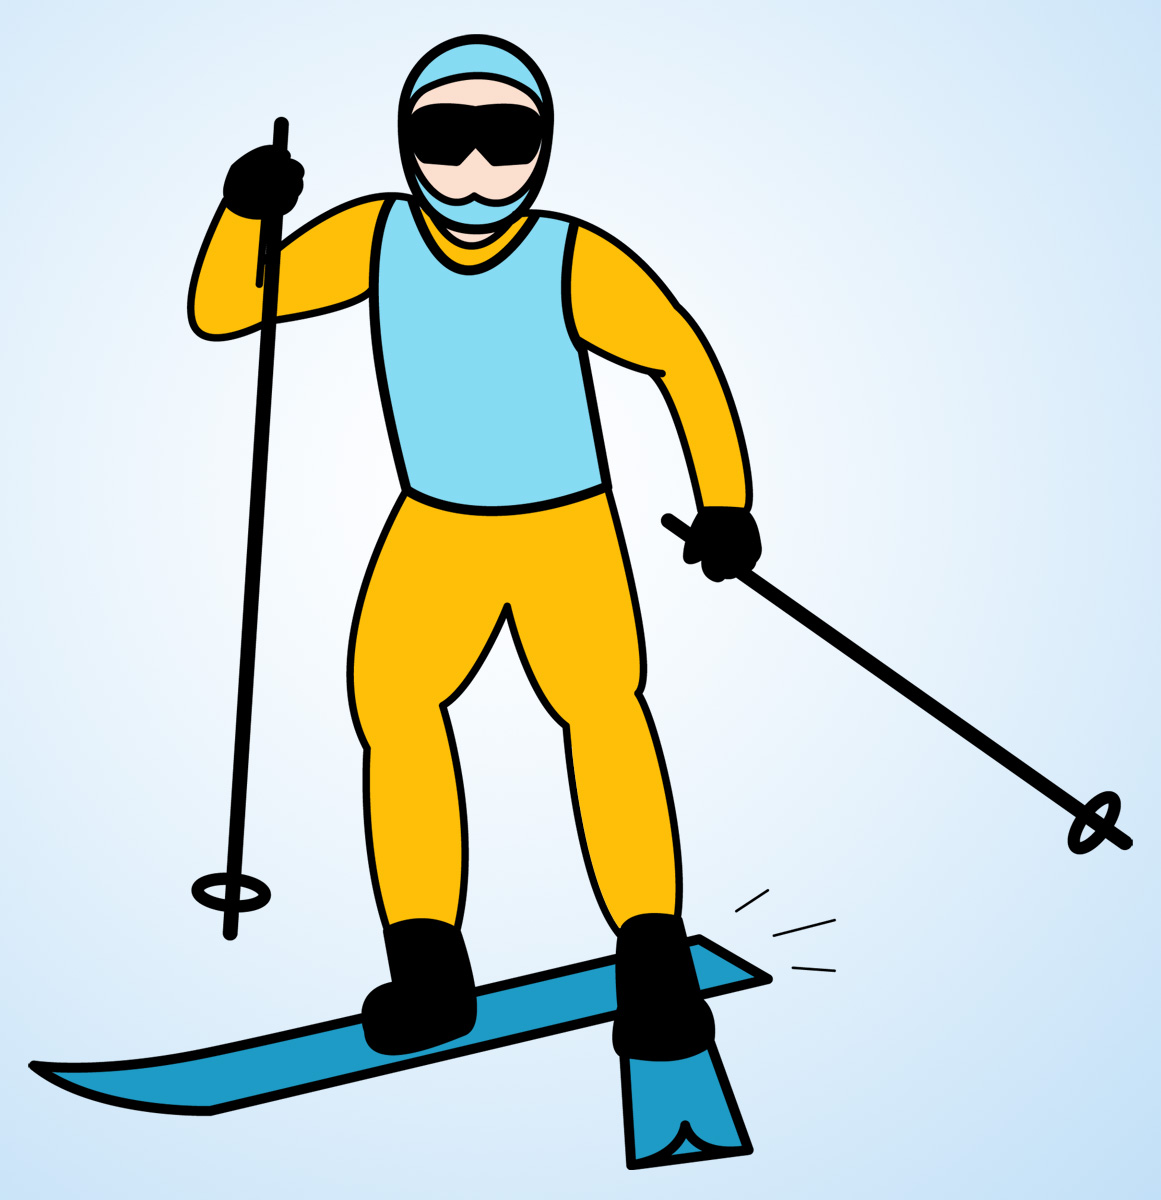 Skiing clipart wipeout Clipart Images Free Panda skier%20clipart